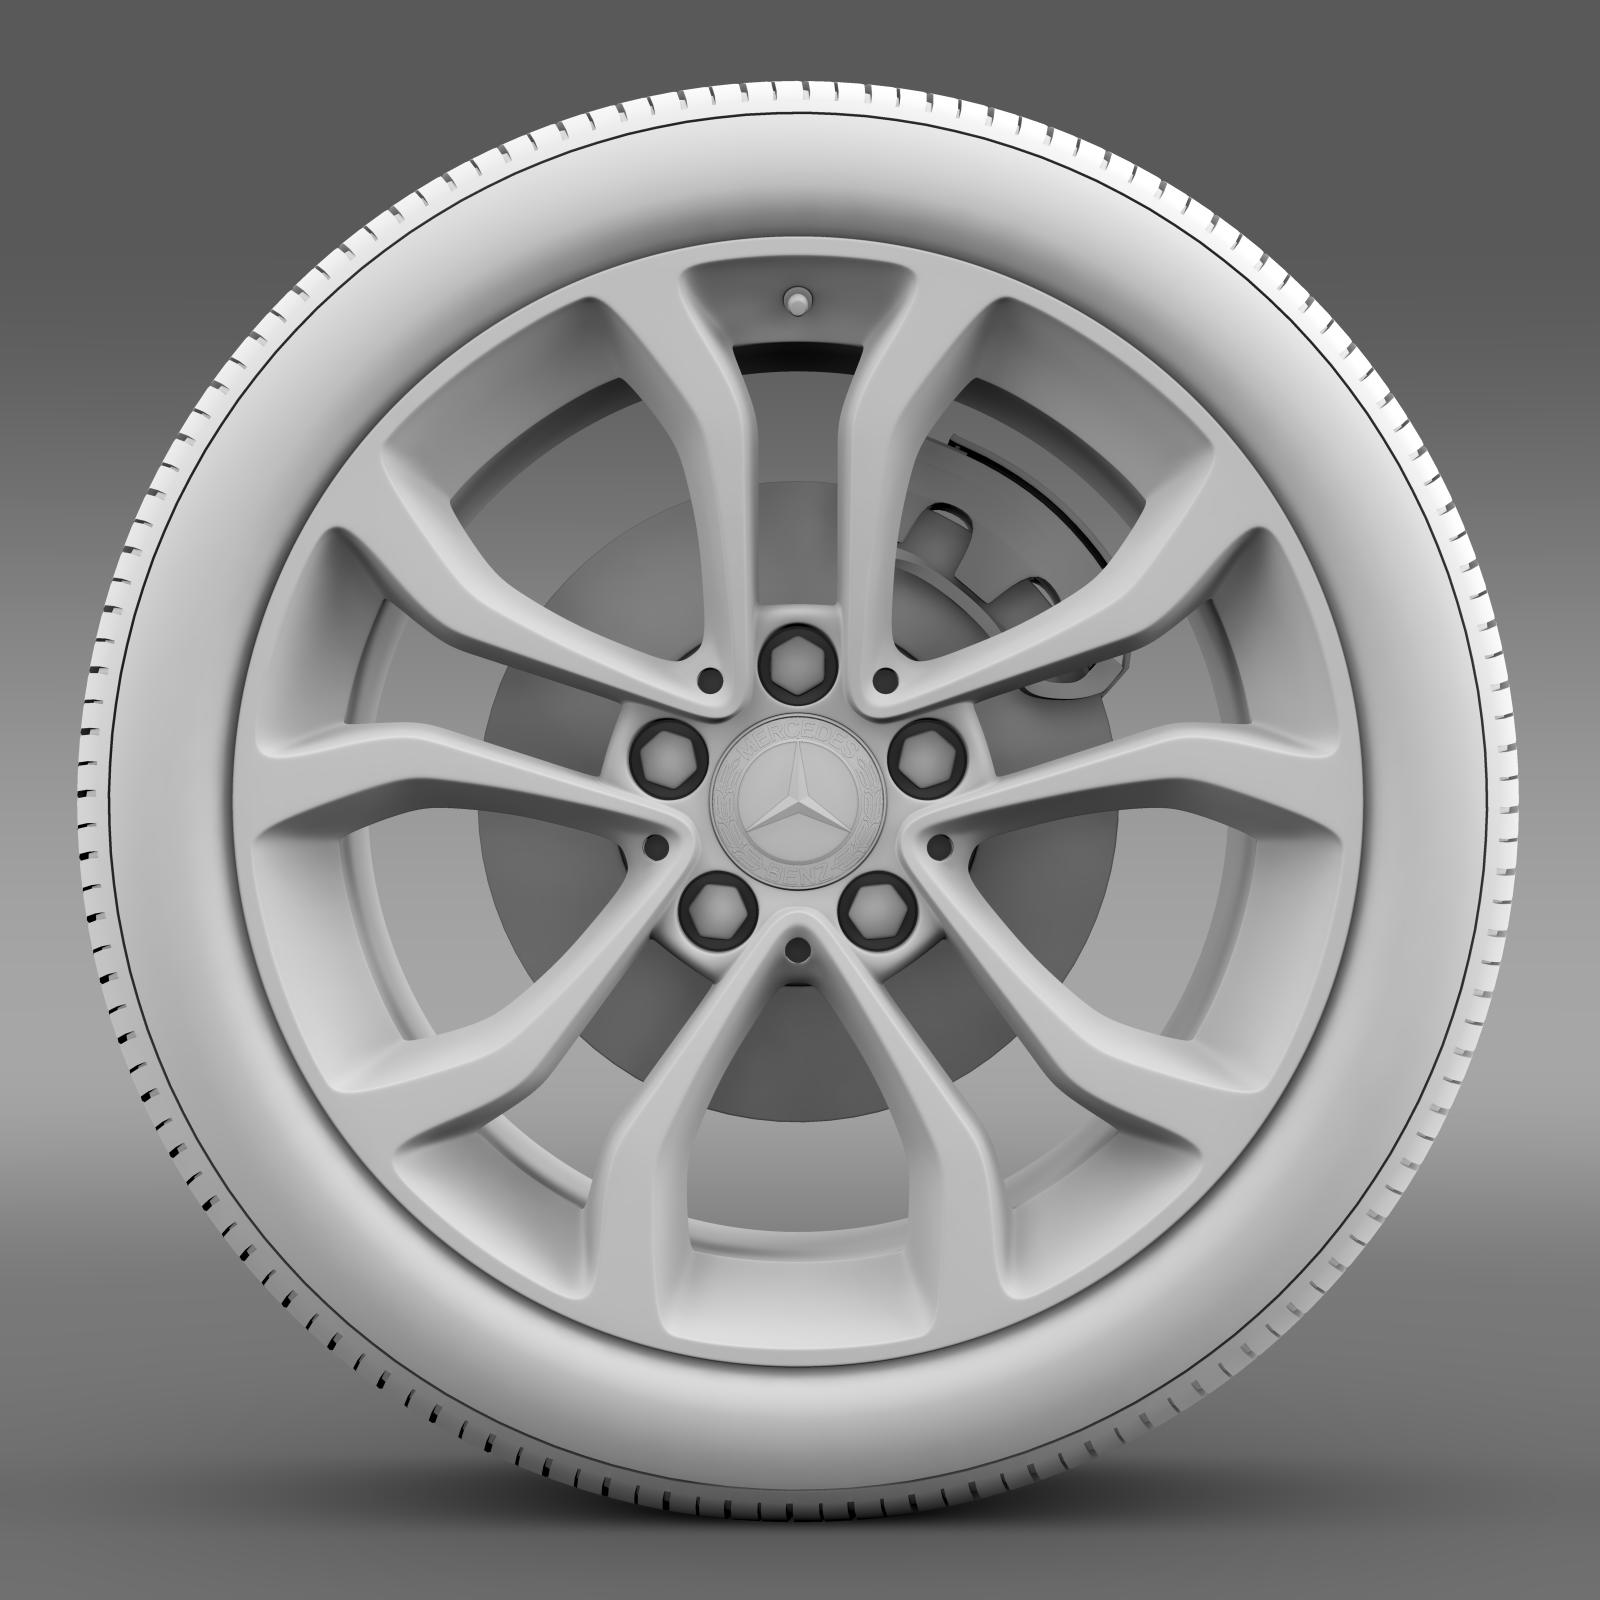 mercedes benz c 220 wheel 3d model 3ds max fbx c4d lwo ma mb hrc xsi obj 210763